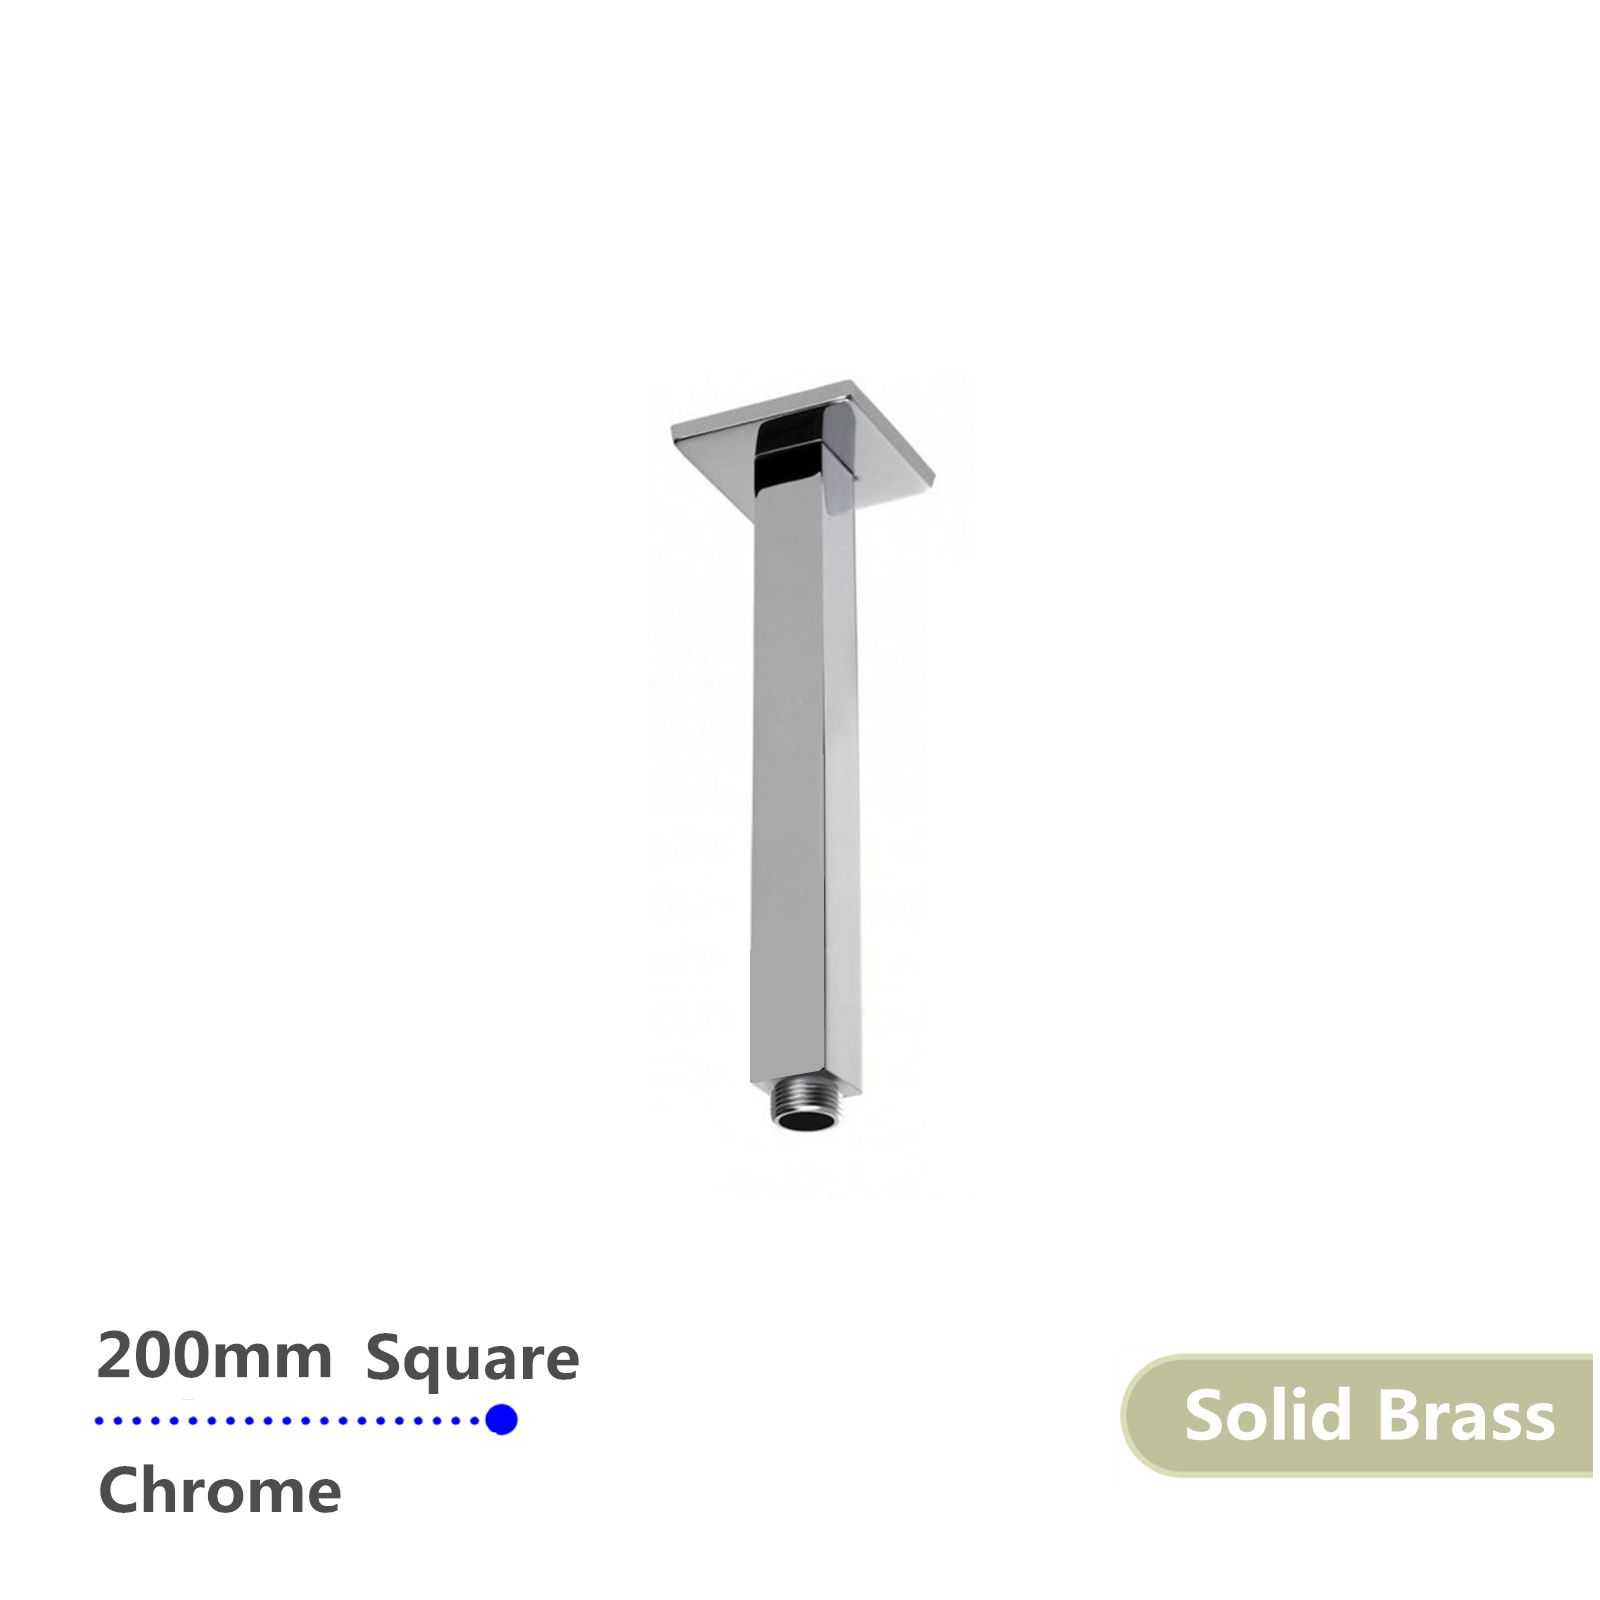 Square Chrome Ceiling Shower Arm 200mm